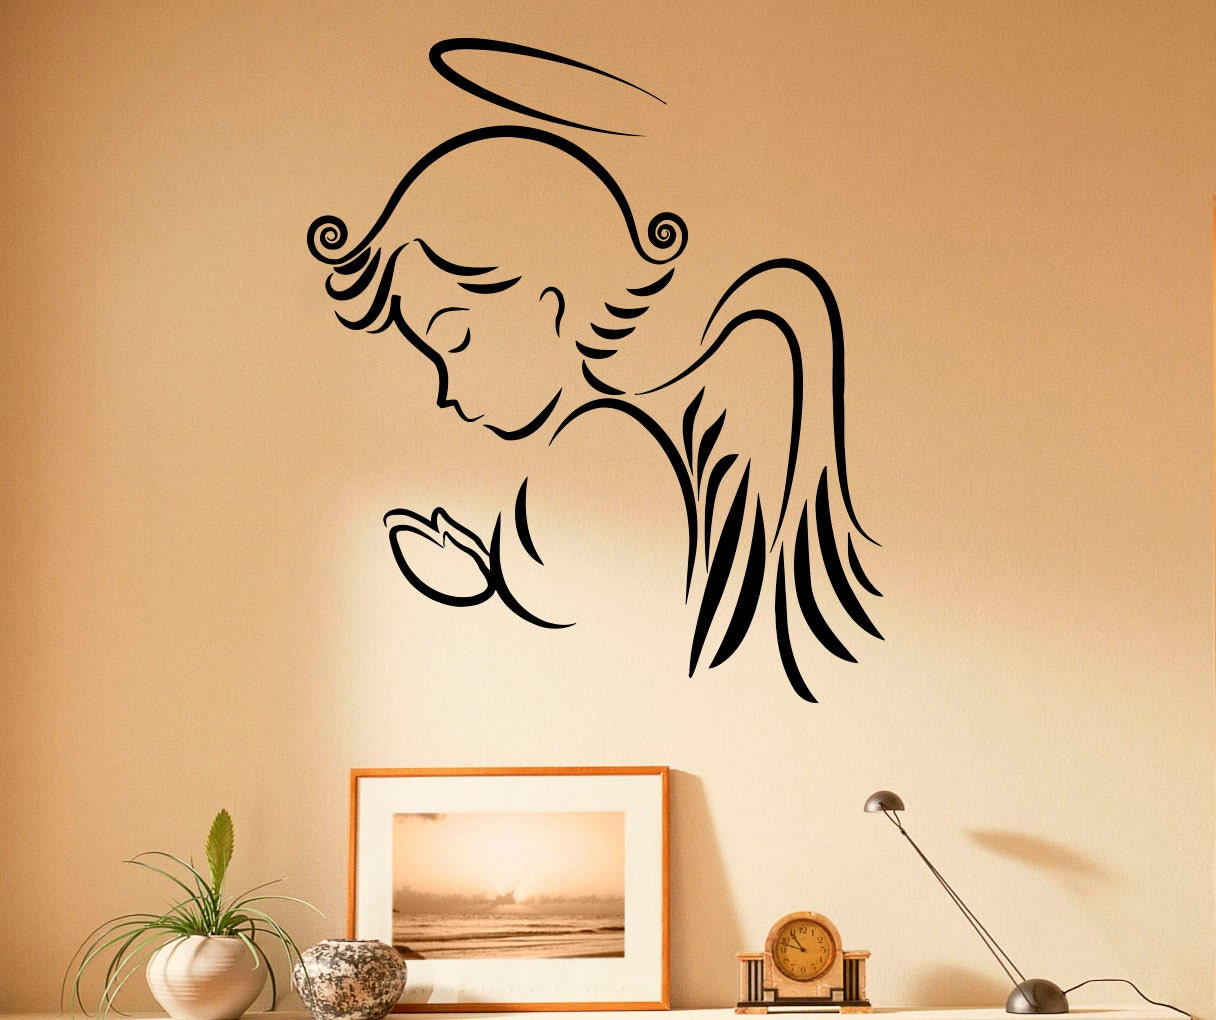 Angel Wall Decal Religion Vinyl Stickers Jesus Christ Home | Etsy